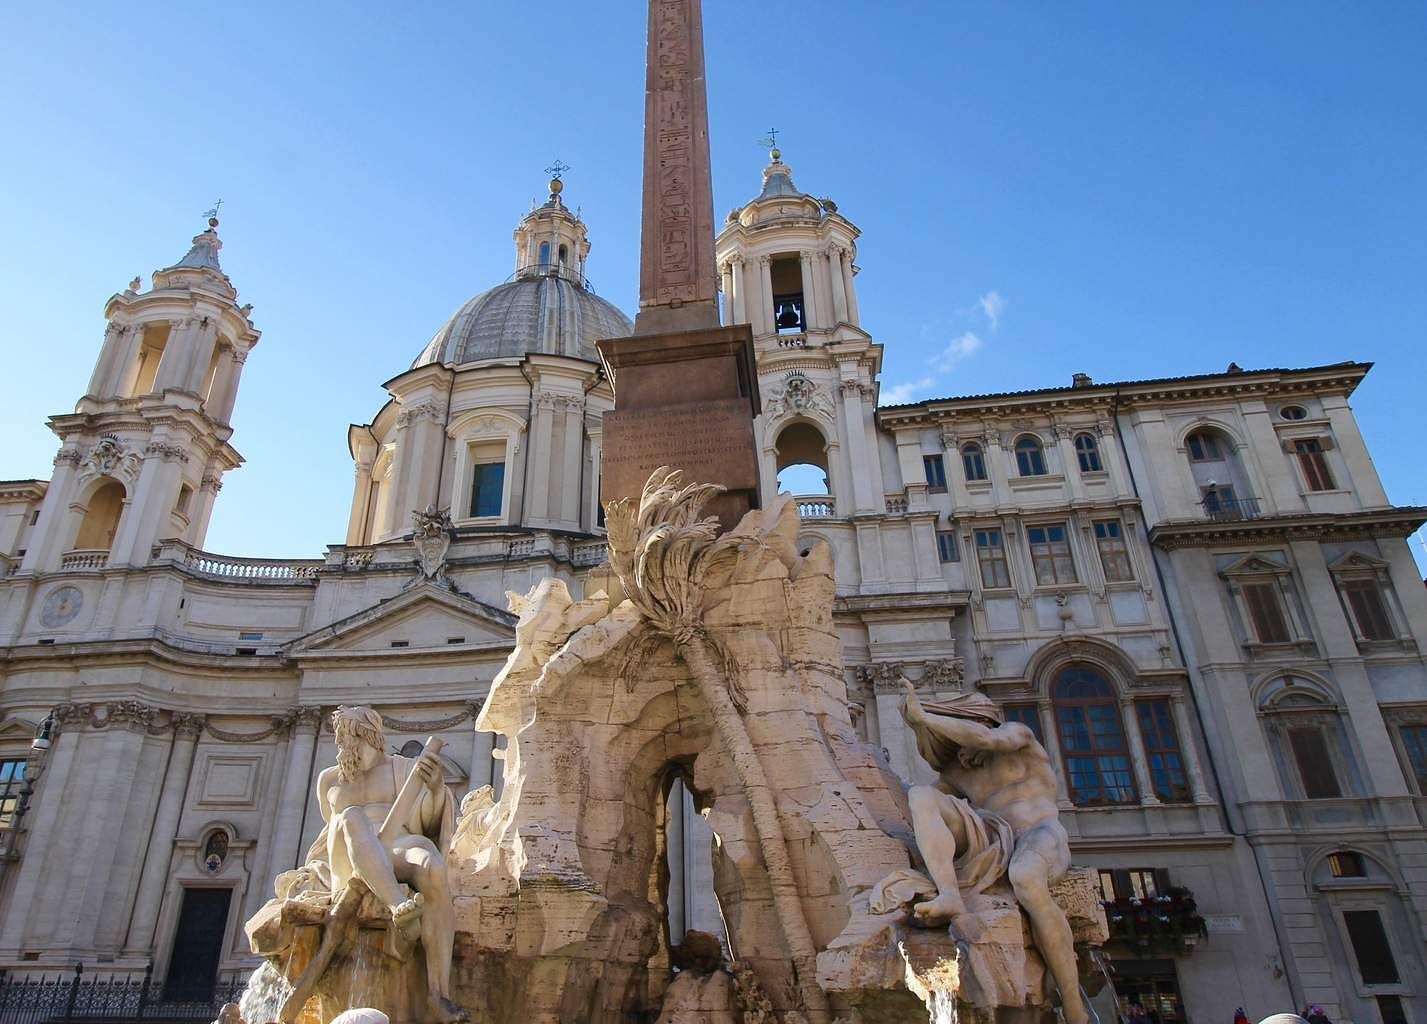 Piazza Navona - Four Rivers Fountain